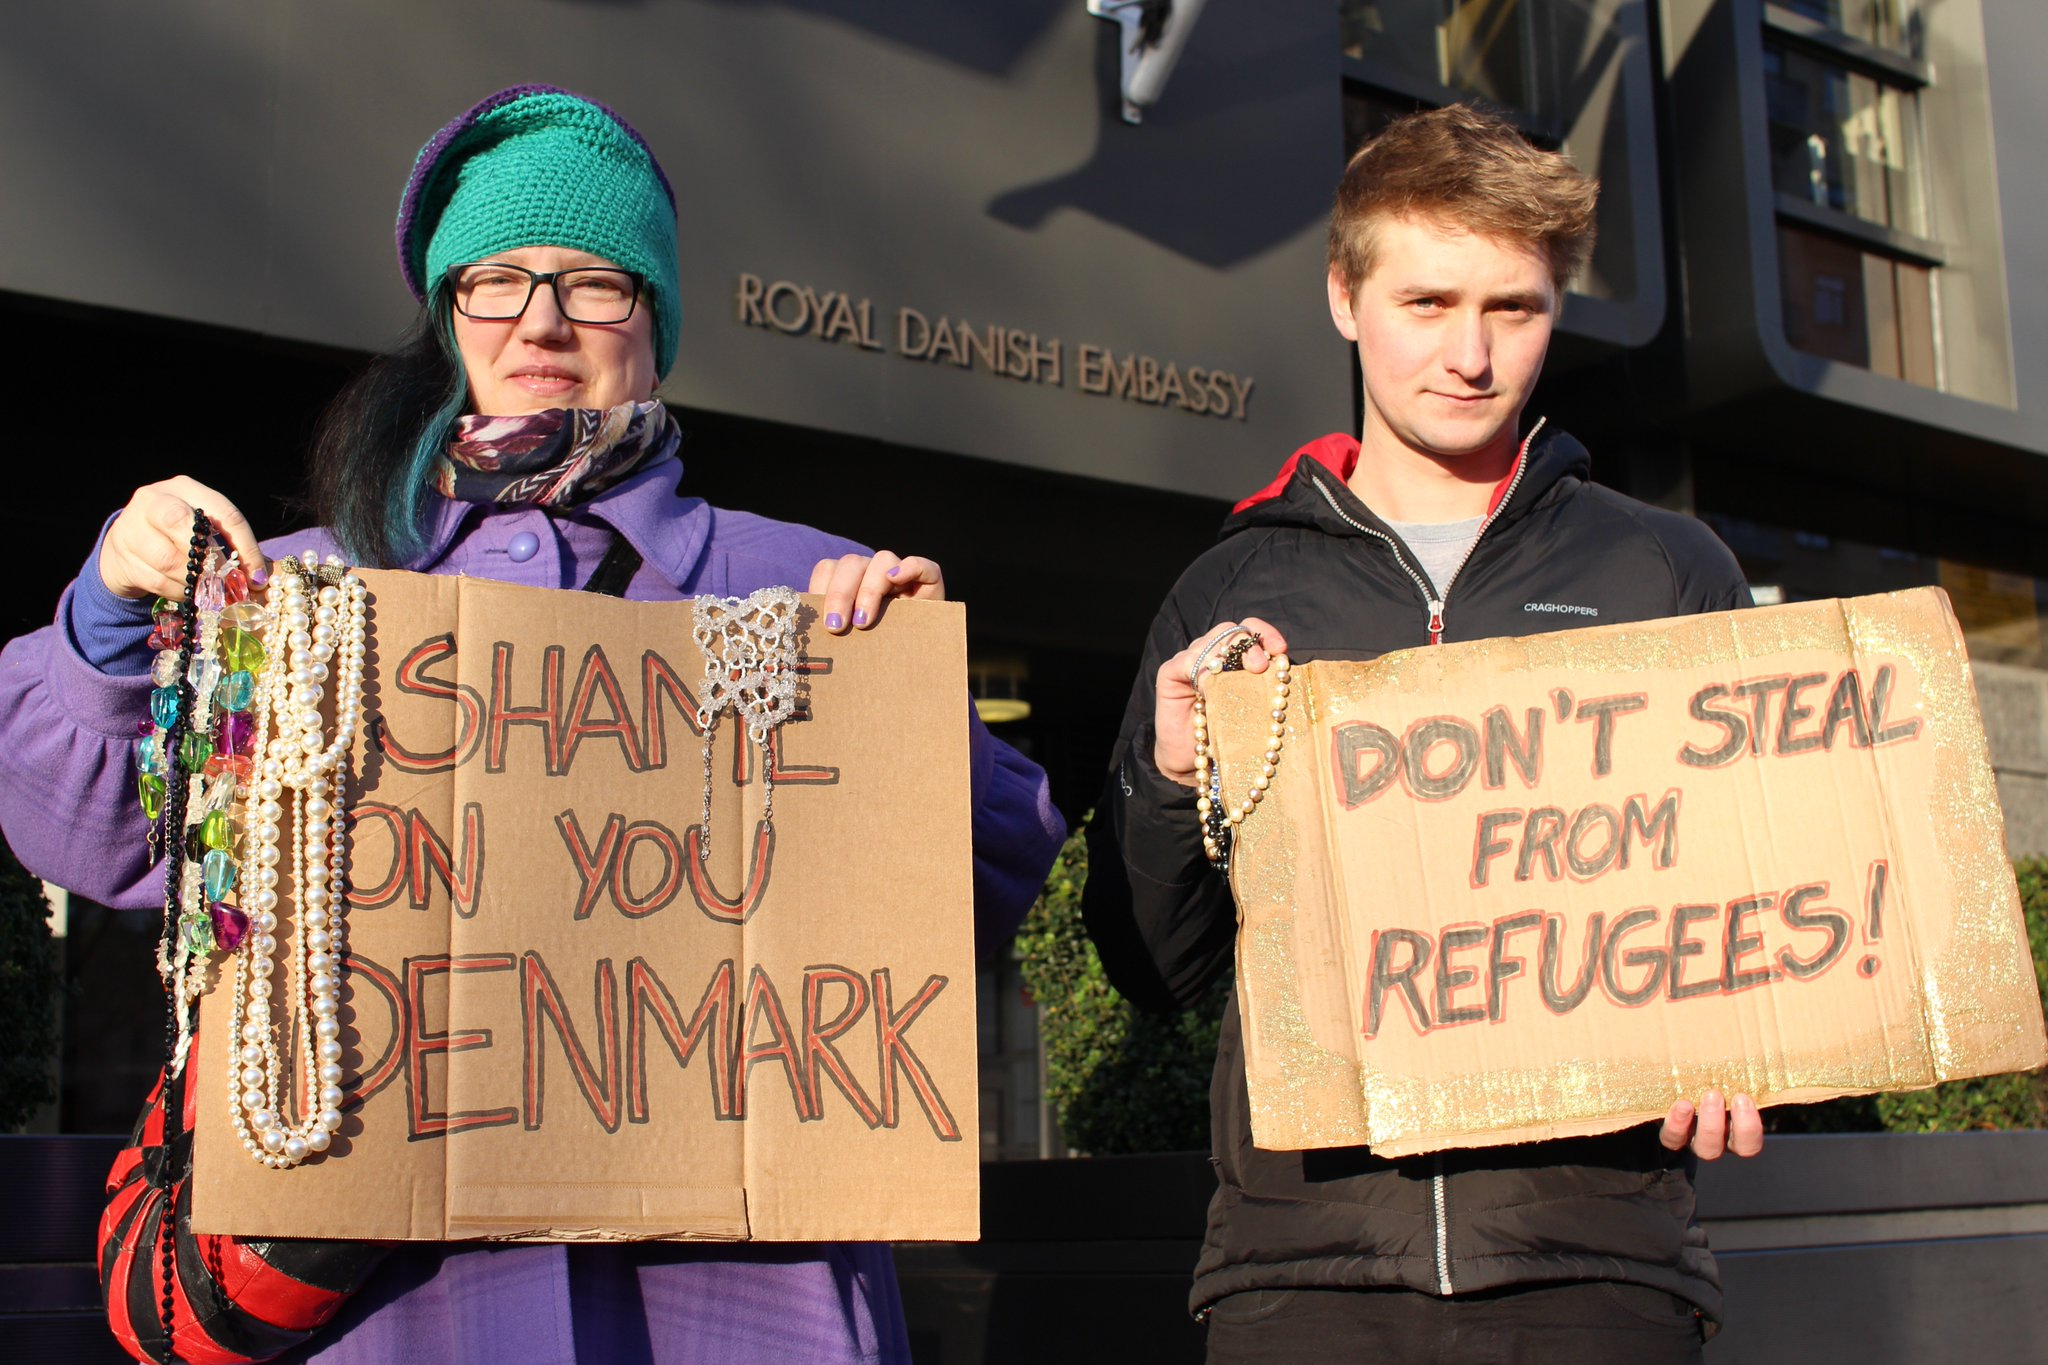 LGBTQ pro-refugee demonstrators at Danish embassy in London